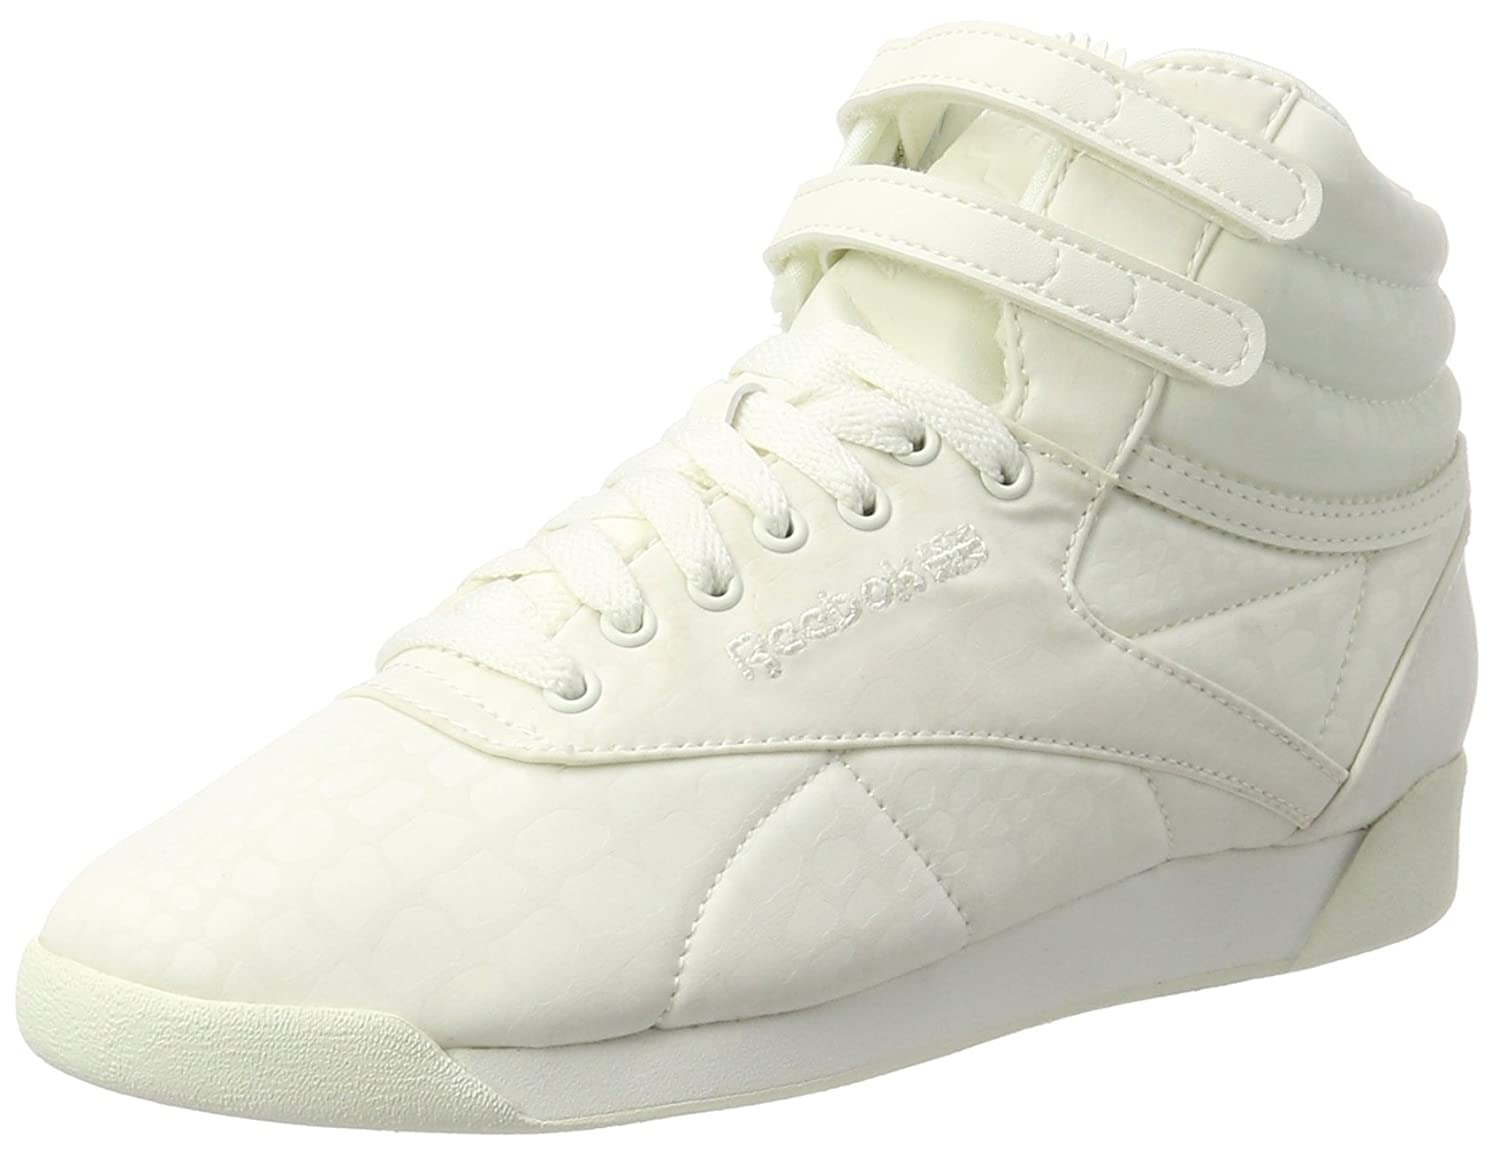 Zapatillas Reebok Freestyle HI Blanco 38 5 Blanco